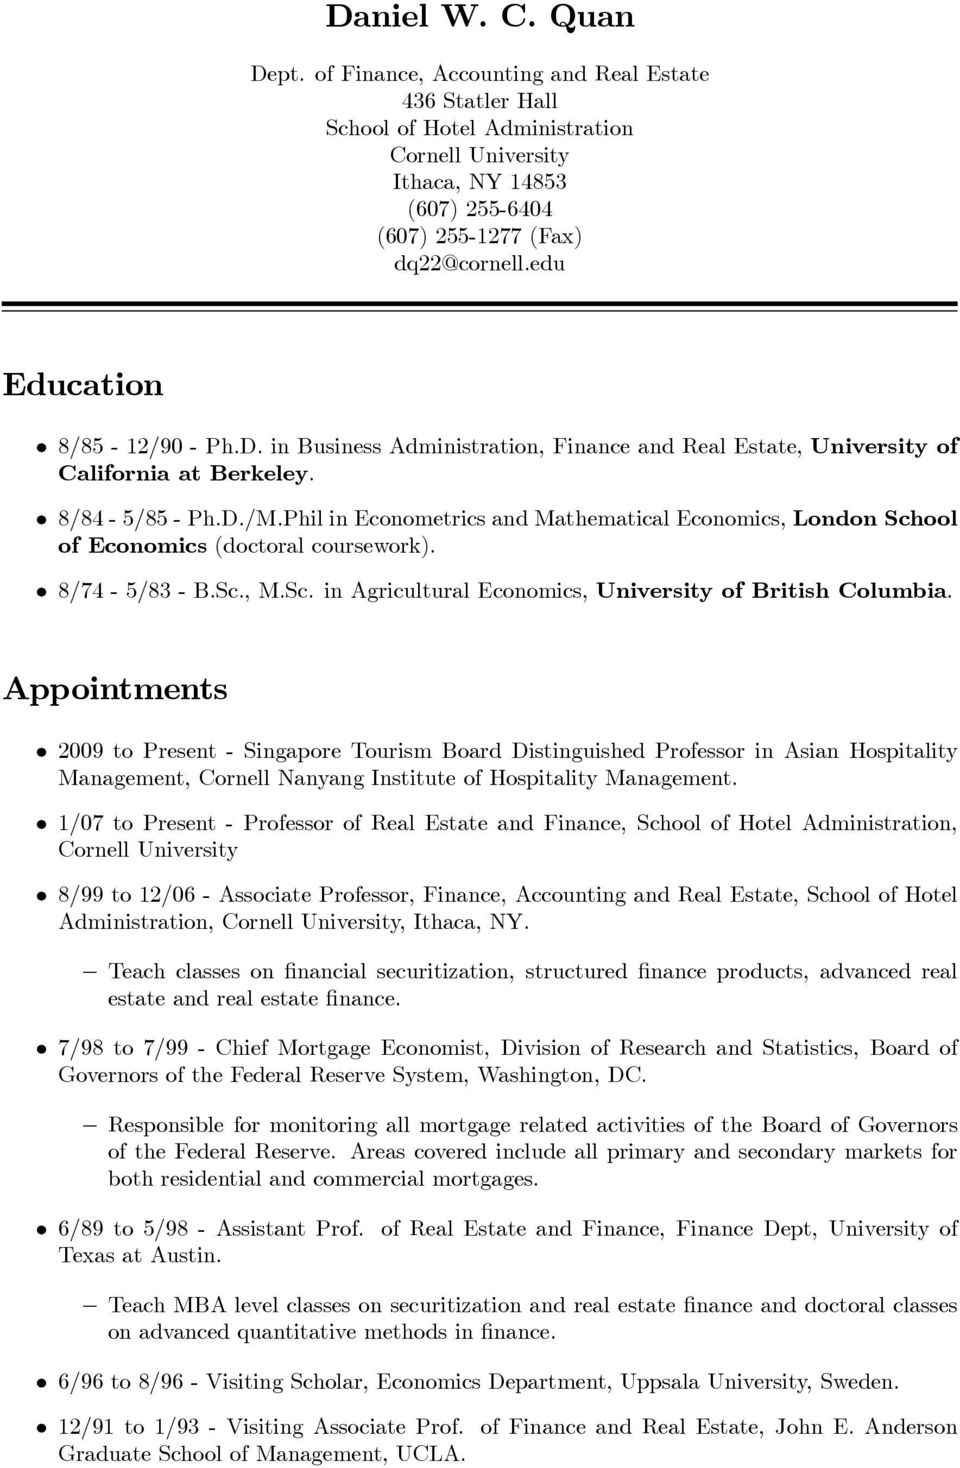 Phil in Econometrics and Mathematical Economics, London School of Economics (doctoral coursework). 8/74-5/83 - B.Sc., M.Sc. in Agricultural Economics, University of British Columbia.